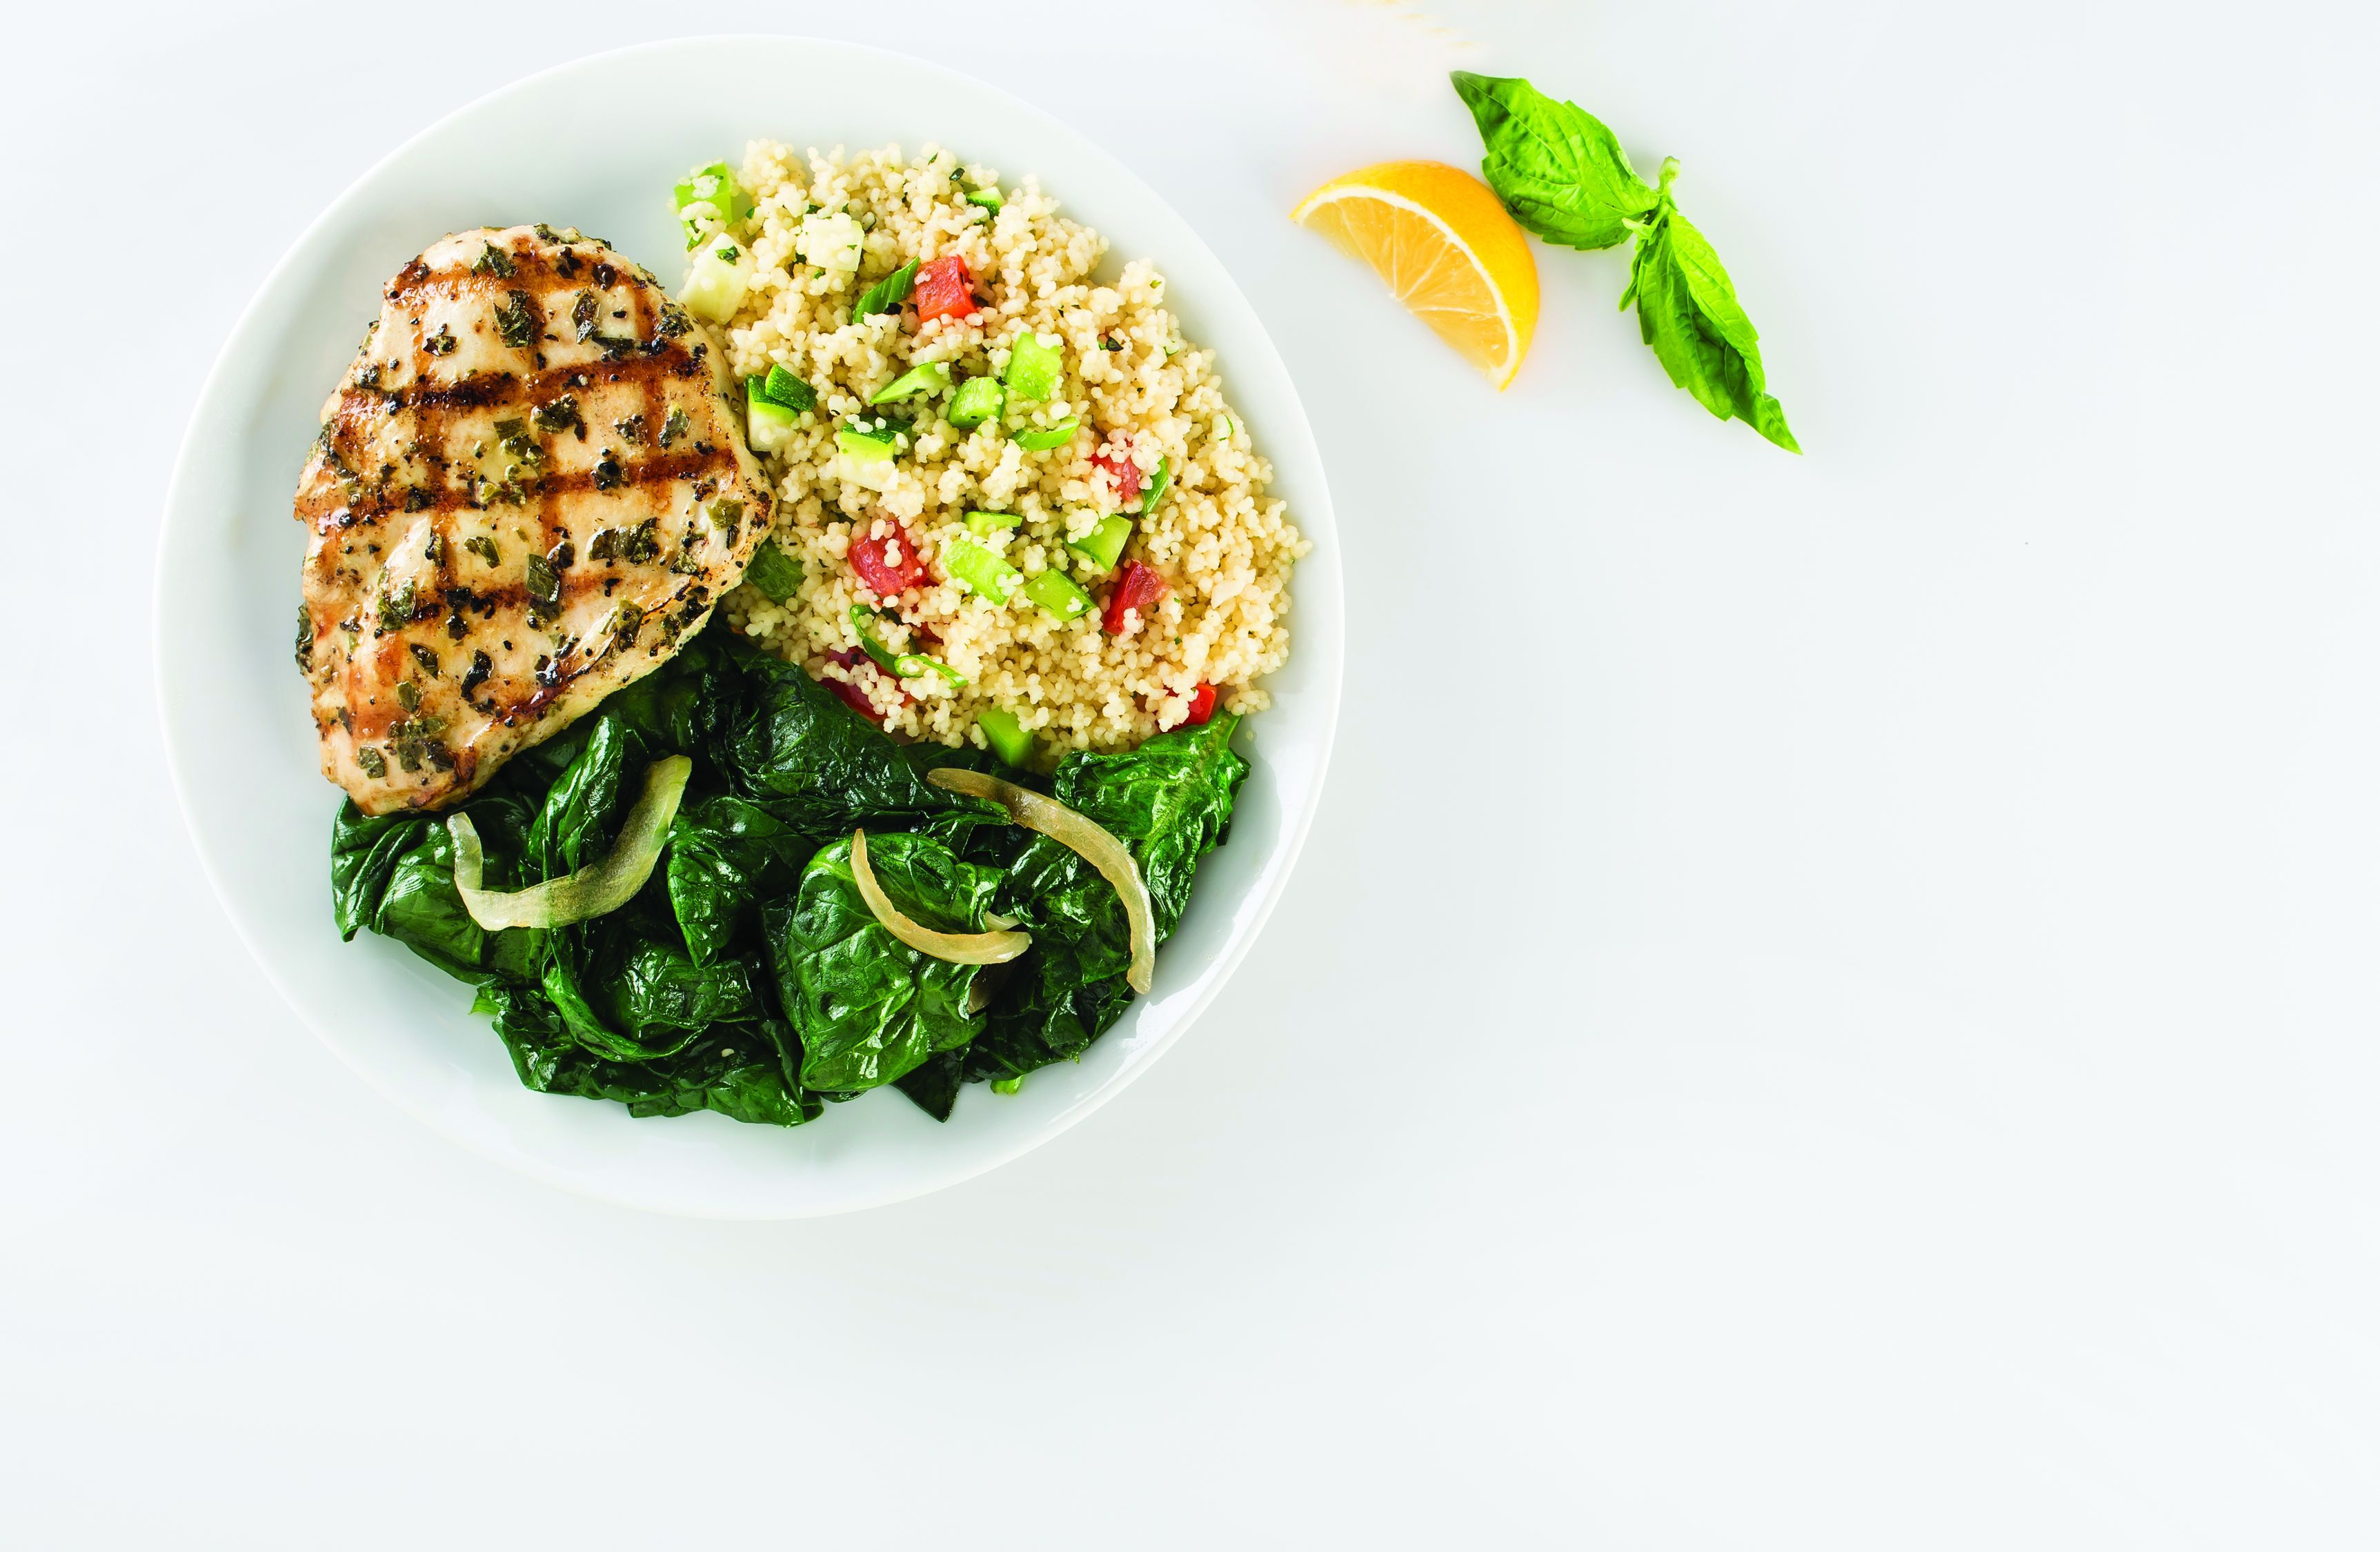 Basil Lemon Chicken Breast with Couscous